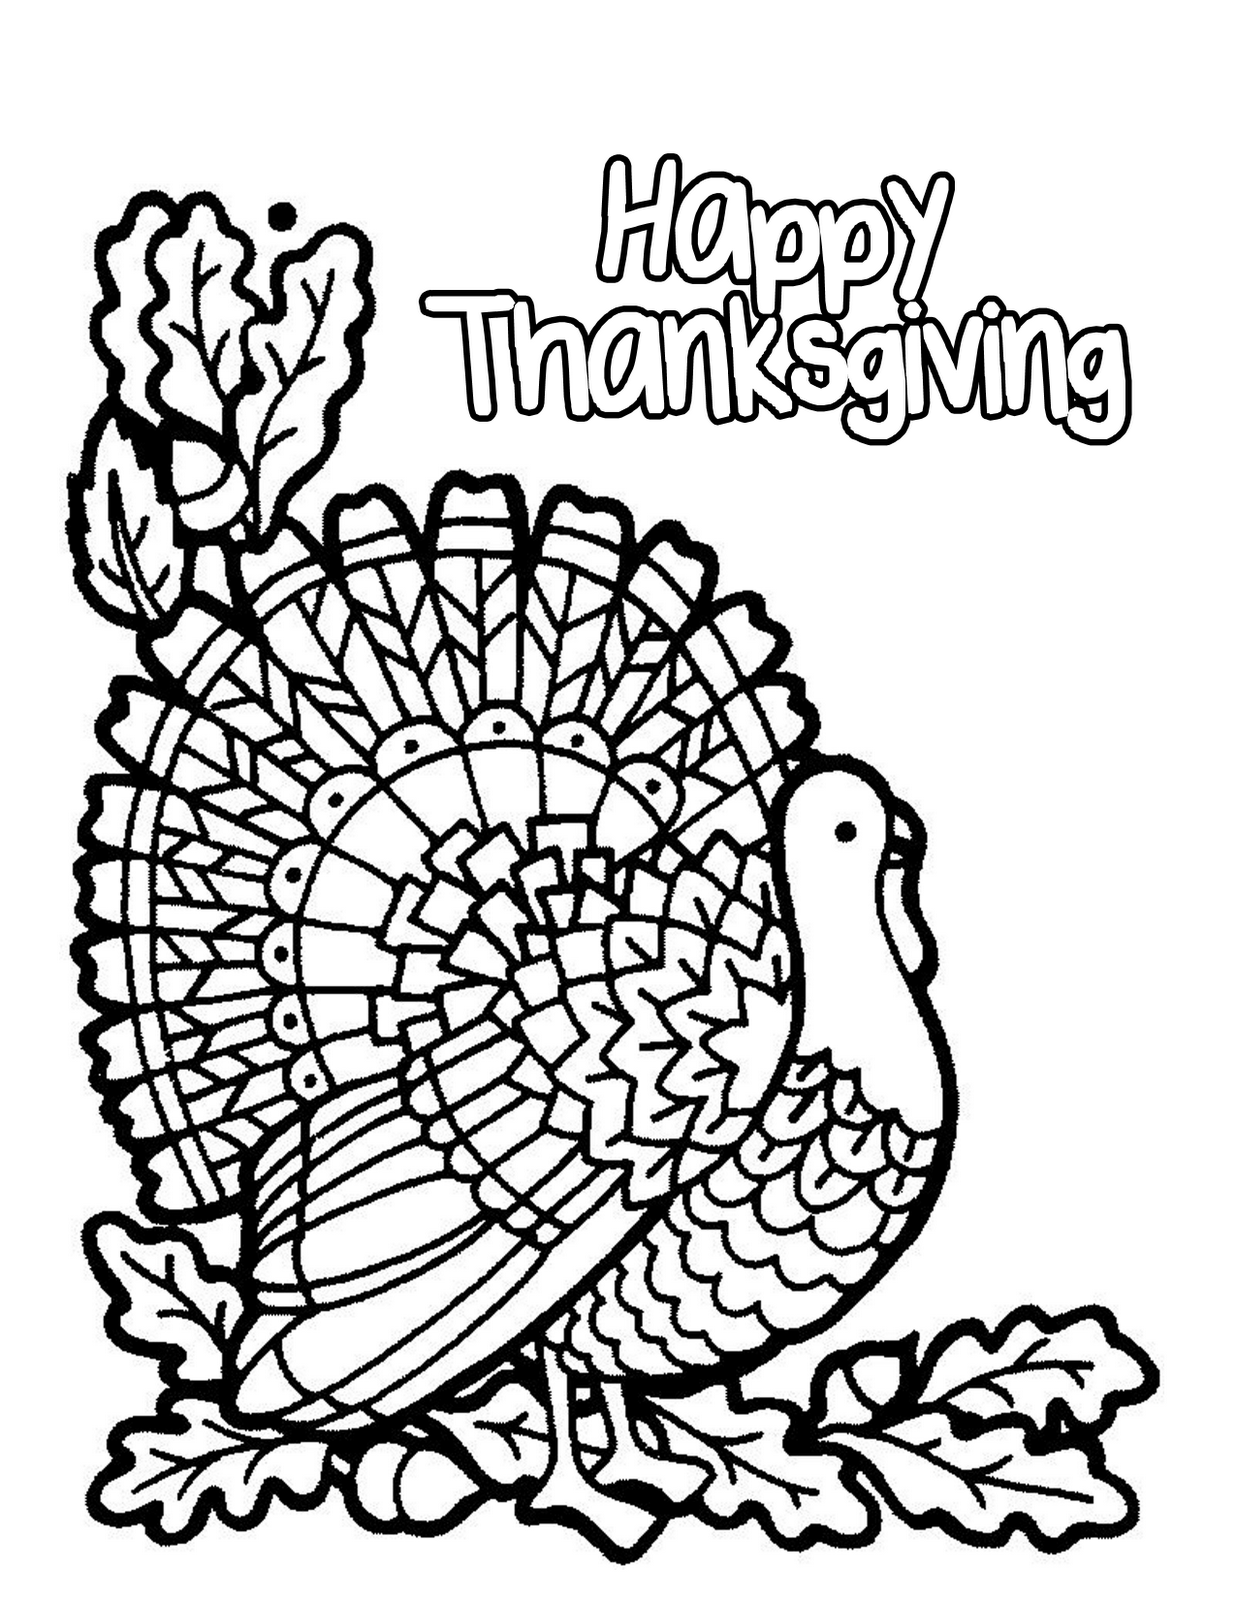 printable thanksgiving coloring book 10 thanksgiving coloring pages coloring printable thanksgiving book